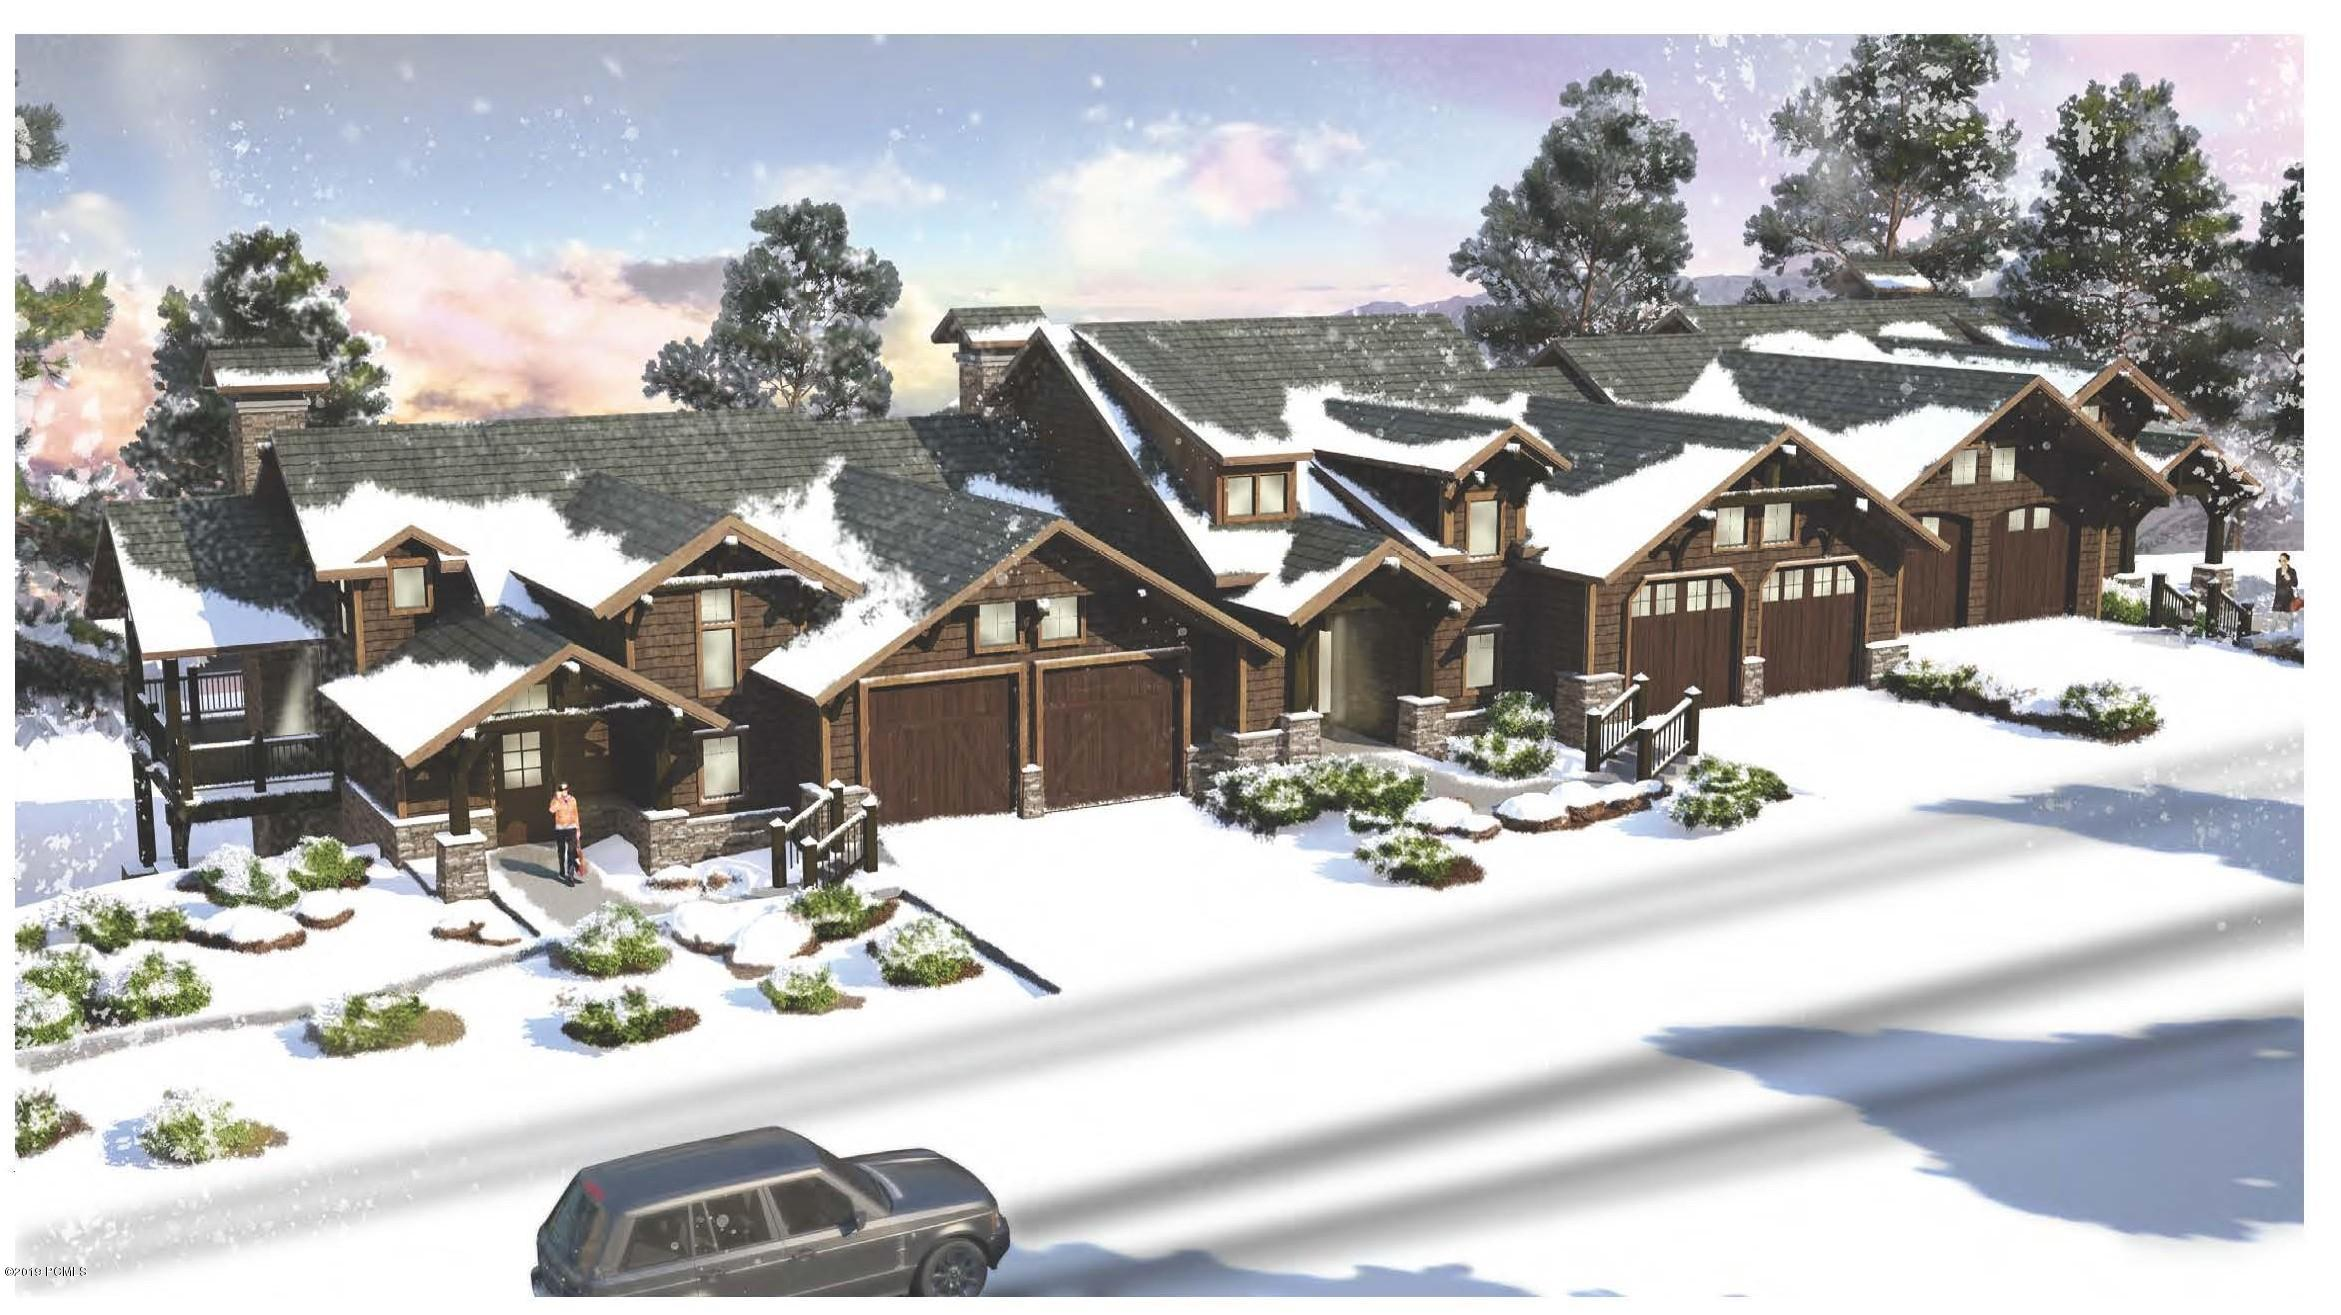 7704 Village Way, Park City, Utah 84060, 4 Bedrooms Bedrooms, ,5 BathroomsBathrooms,Condominium,For Sale,Village,20190109112430415765000000